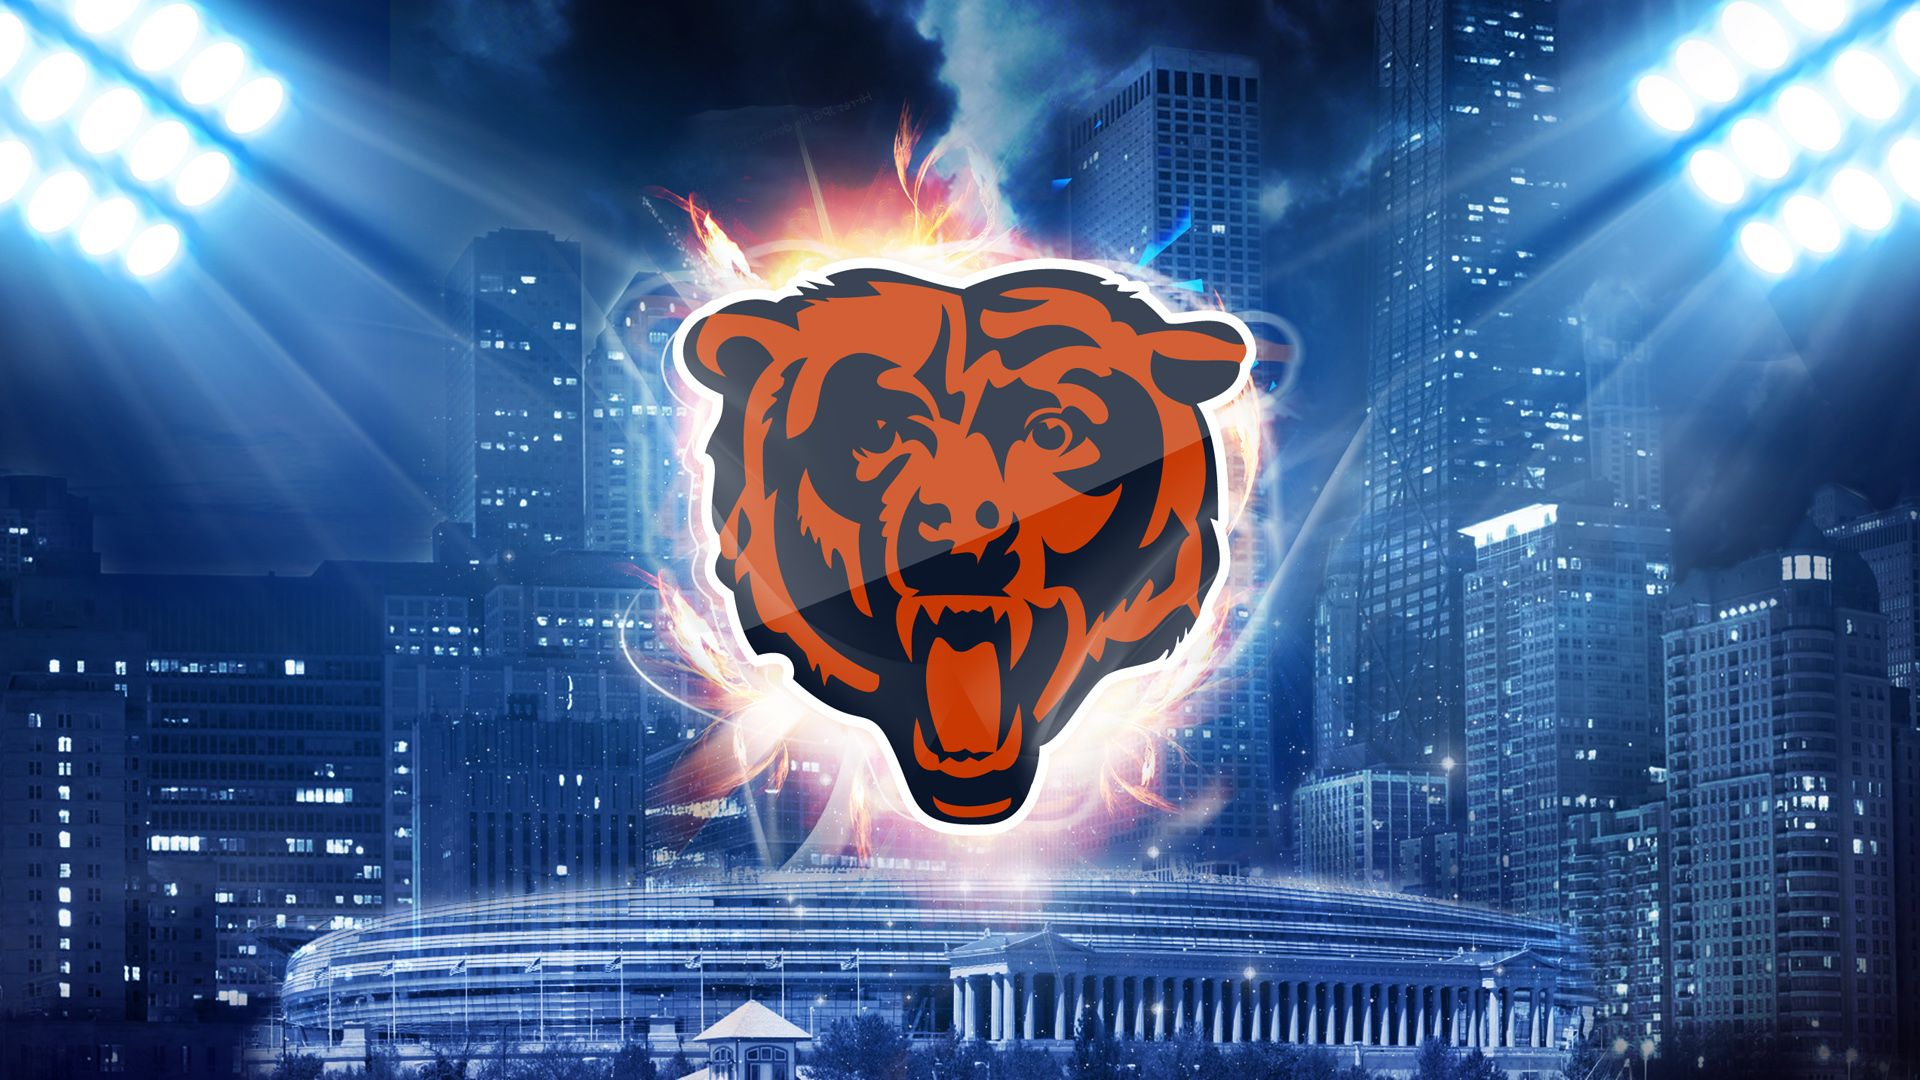 Chicago Bears Desktop Wallpaper 52903 1920x1080 px ~ HDWallSource.com